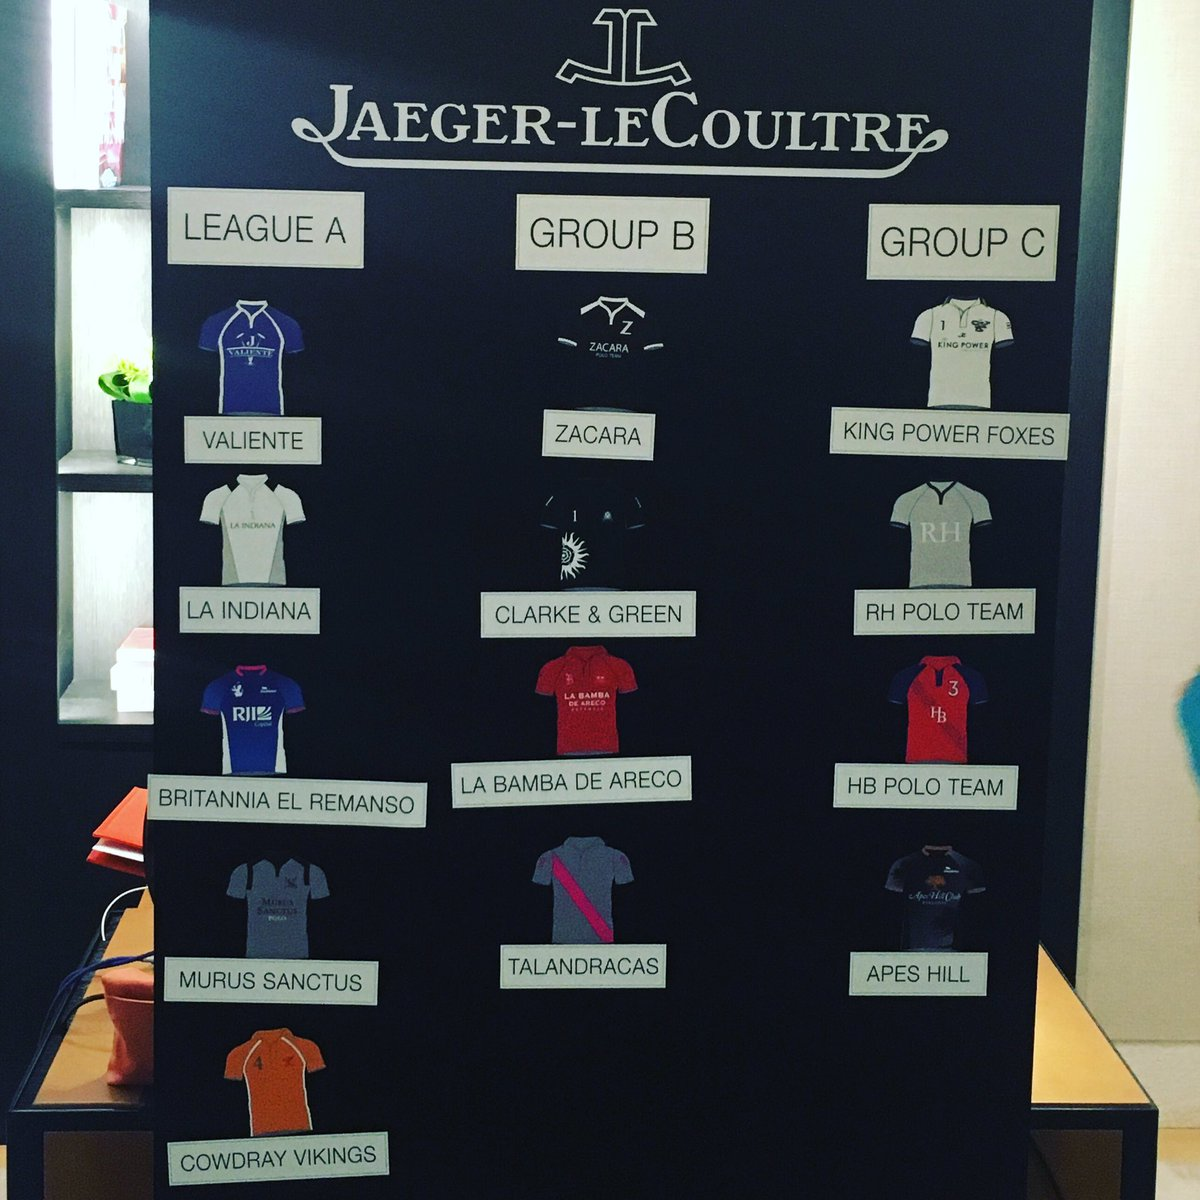 Live update here from London! The results of the @jaegerlecoultre Gold Cup Draw #jlcandpolo #85reverso https://t.co/SMRPa24Djl